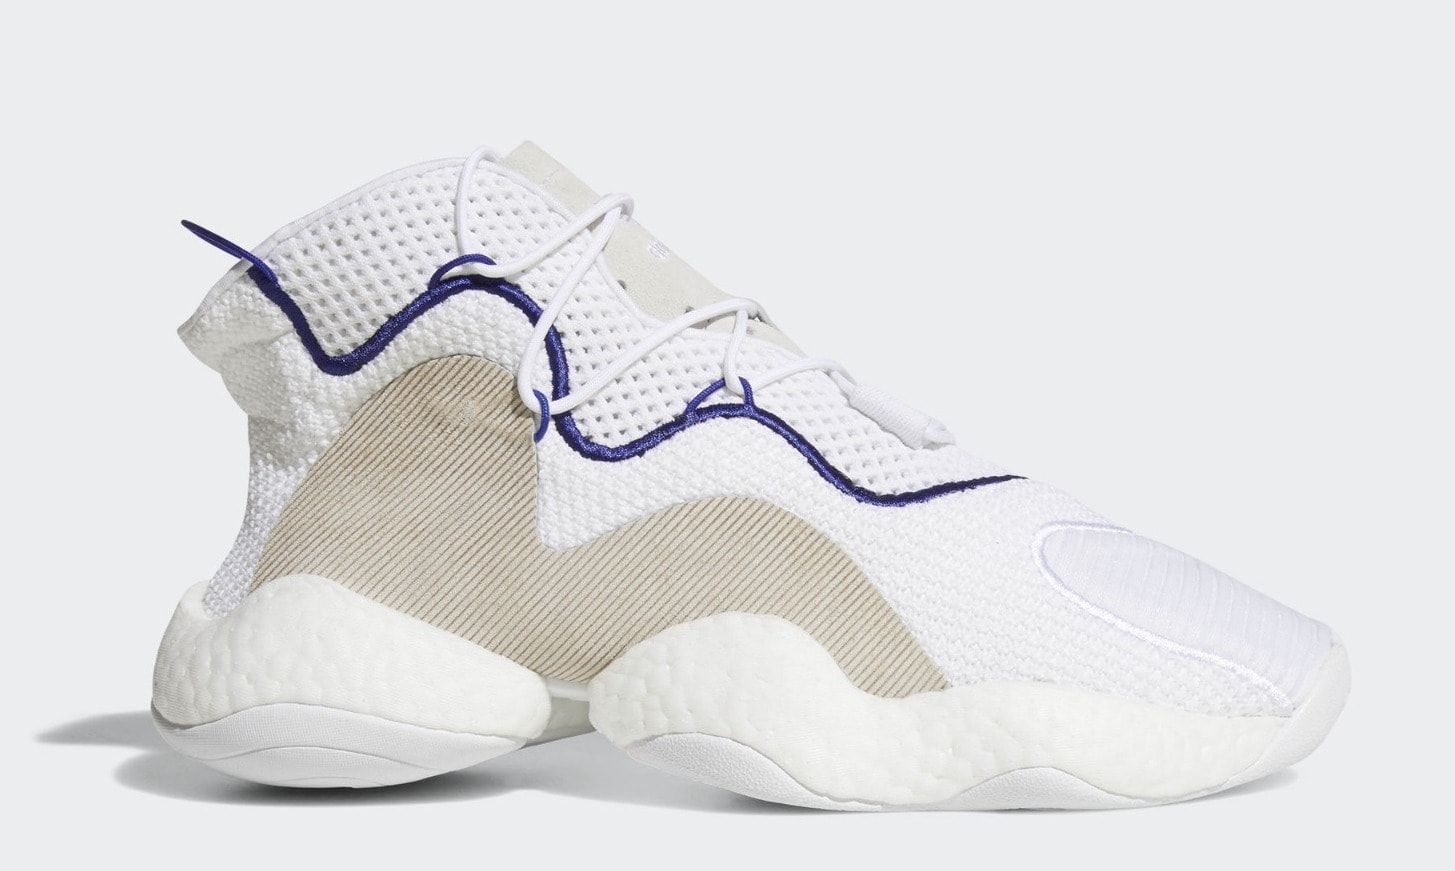 the latest 0b813 477a6 ... closeout adidas crazy byw lvl1 release date march 1st 2018. price 170.  color ftwr